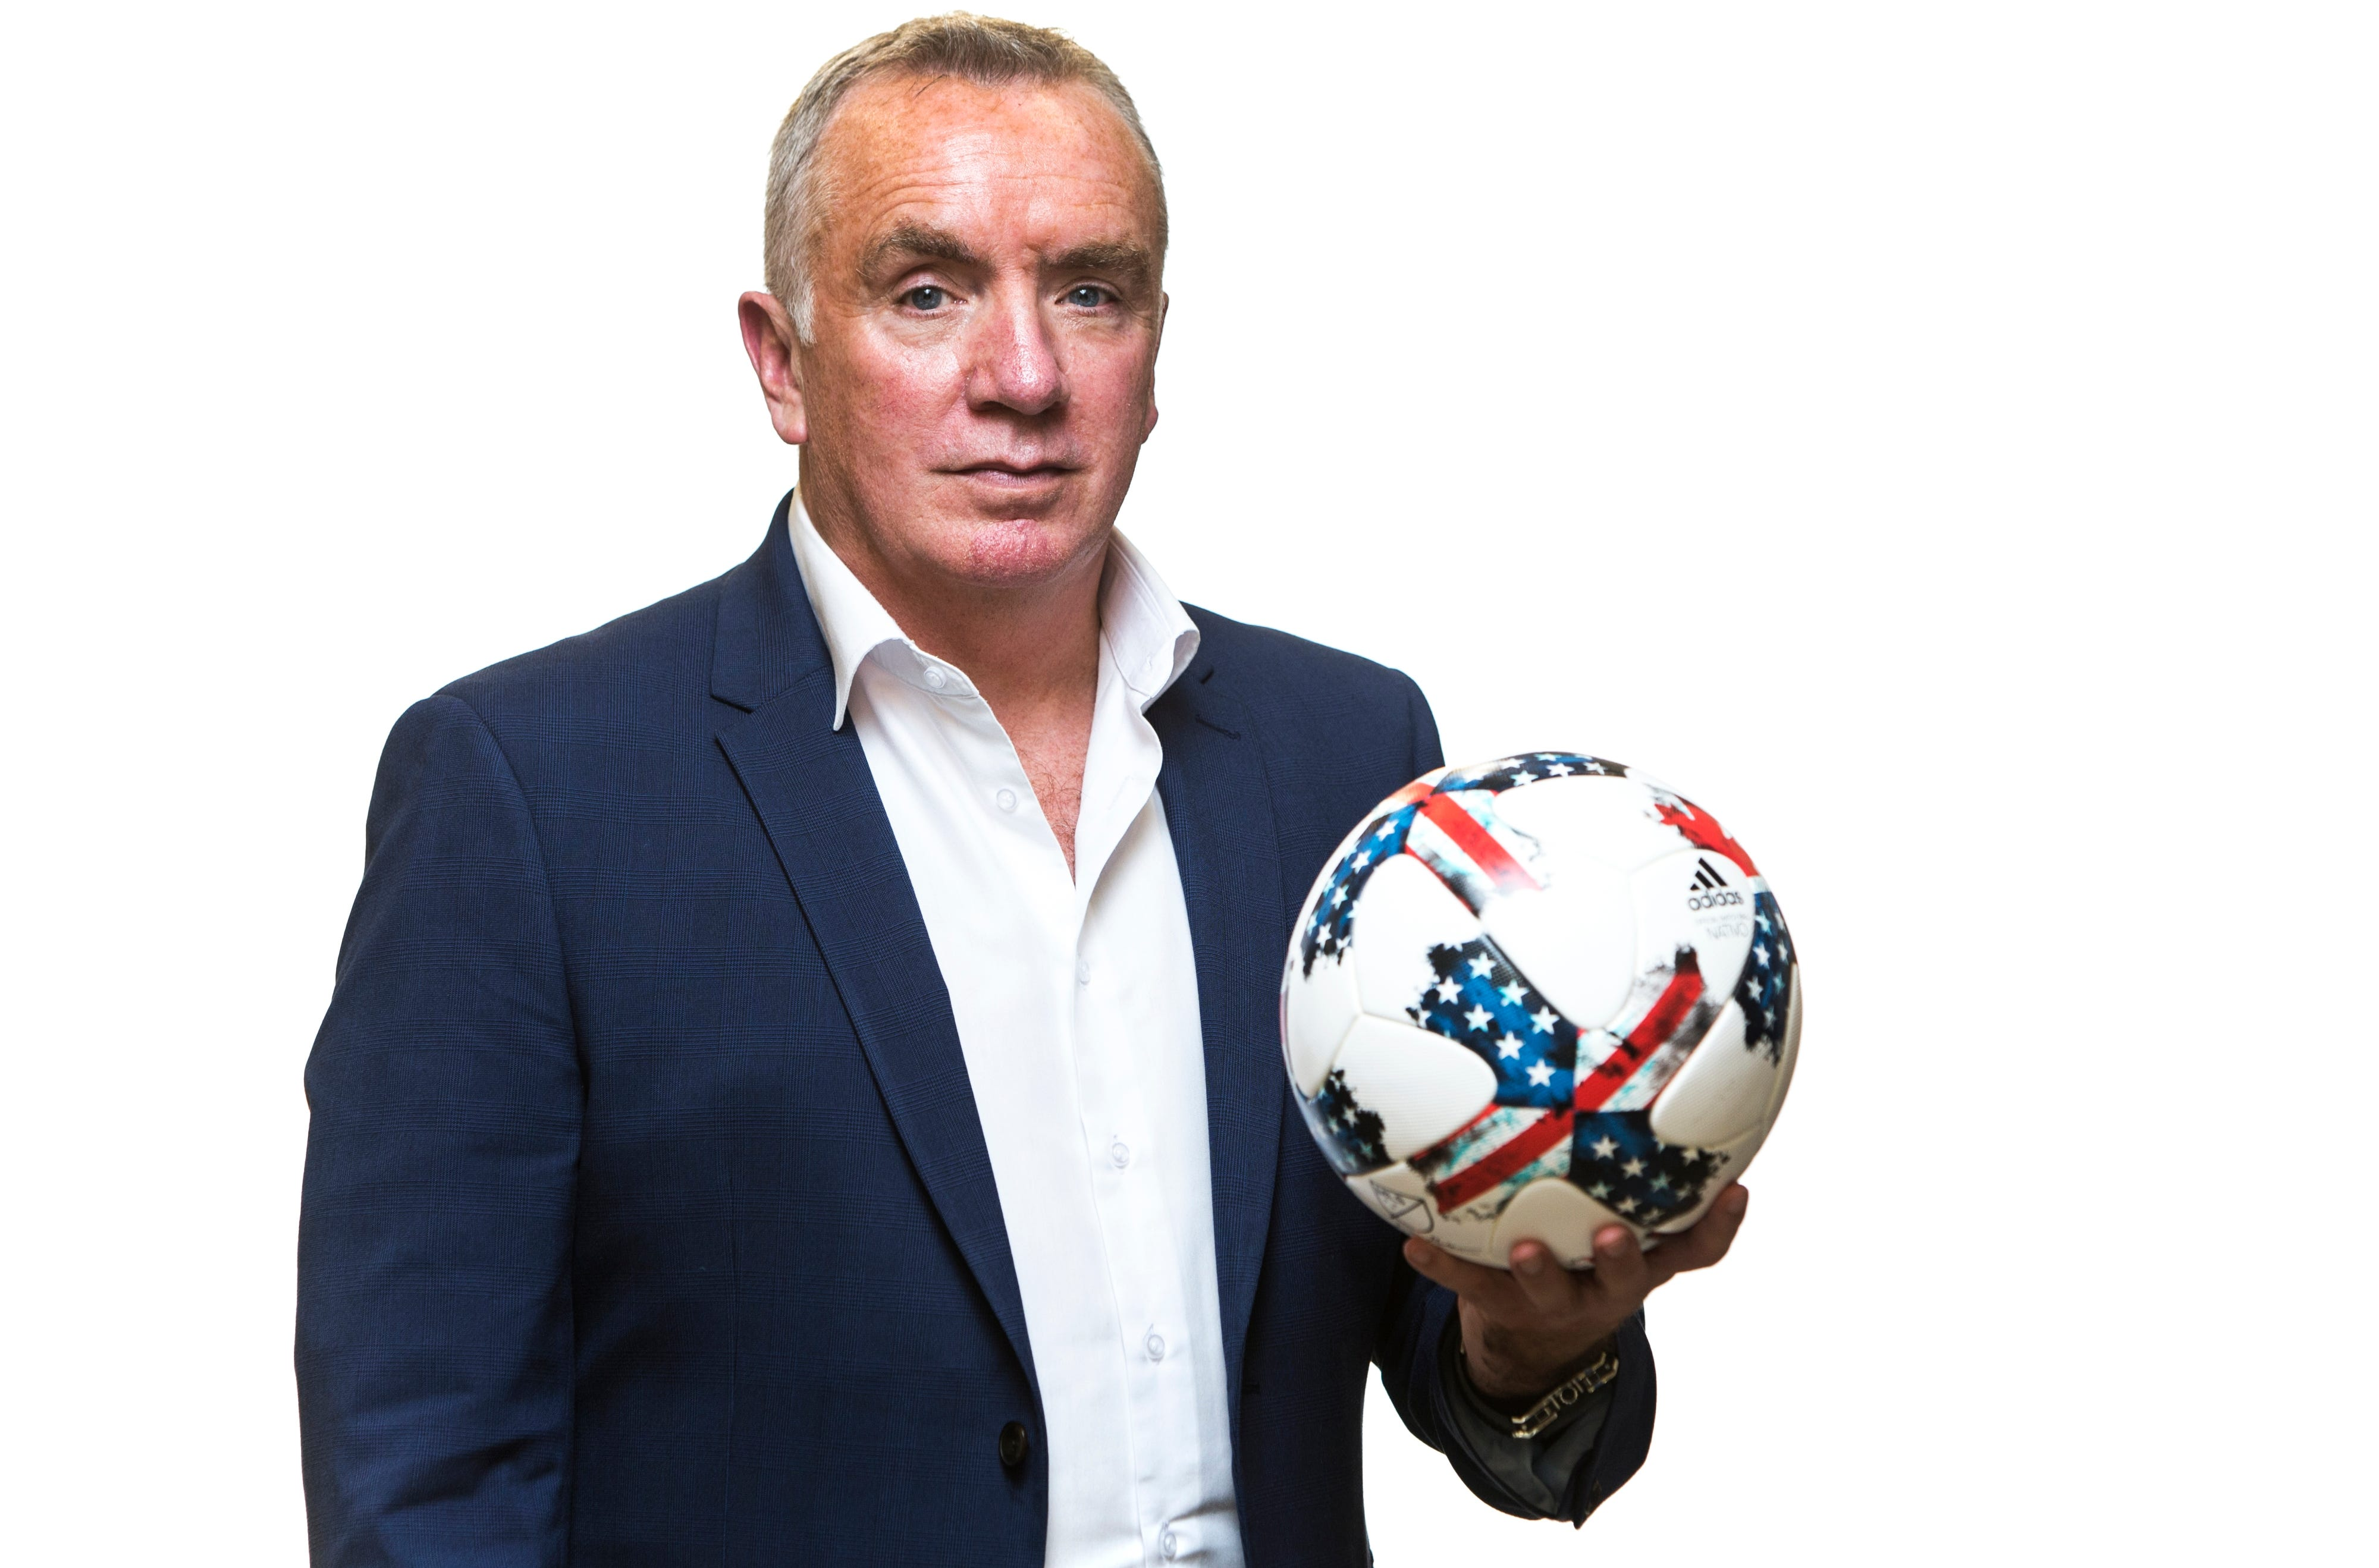 Ian Ayre to take over Nashville's MLS club — that's a bombshell, baby